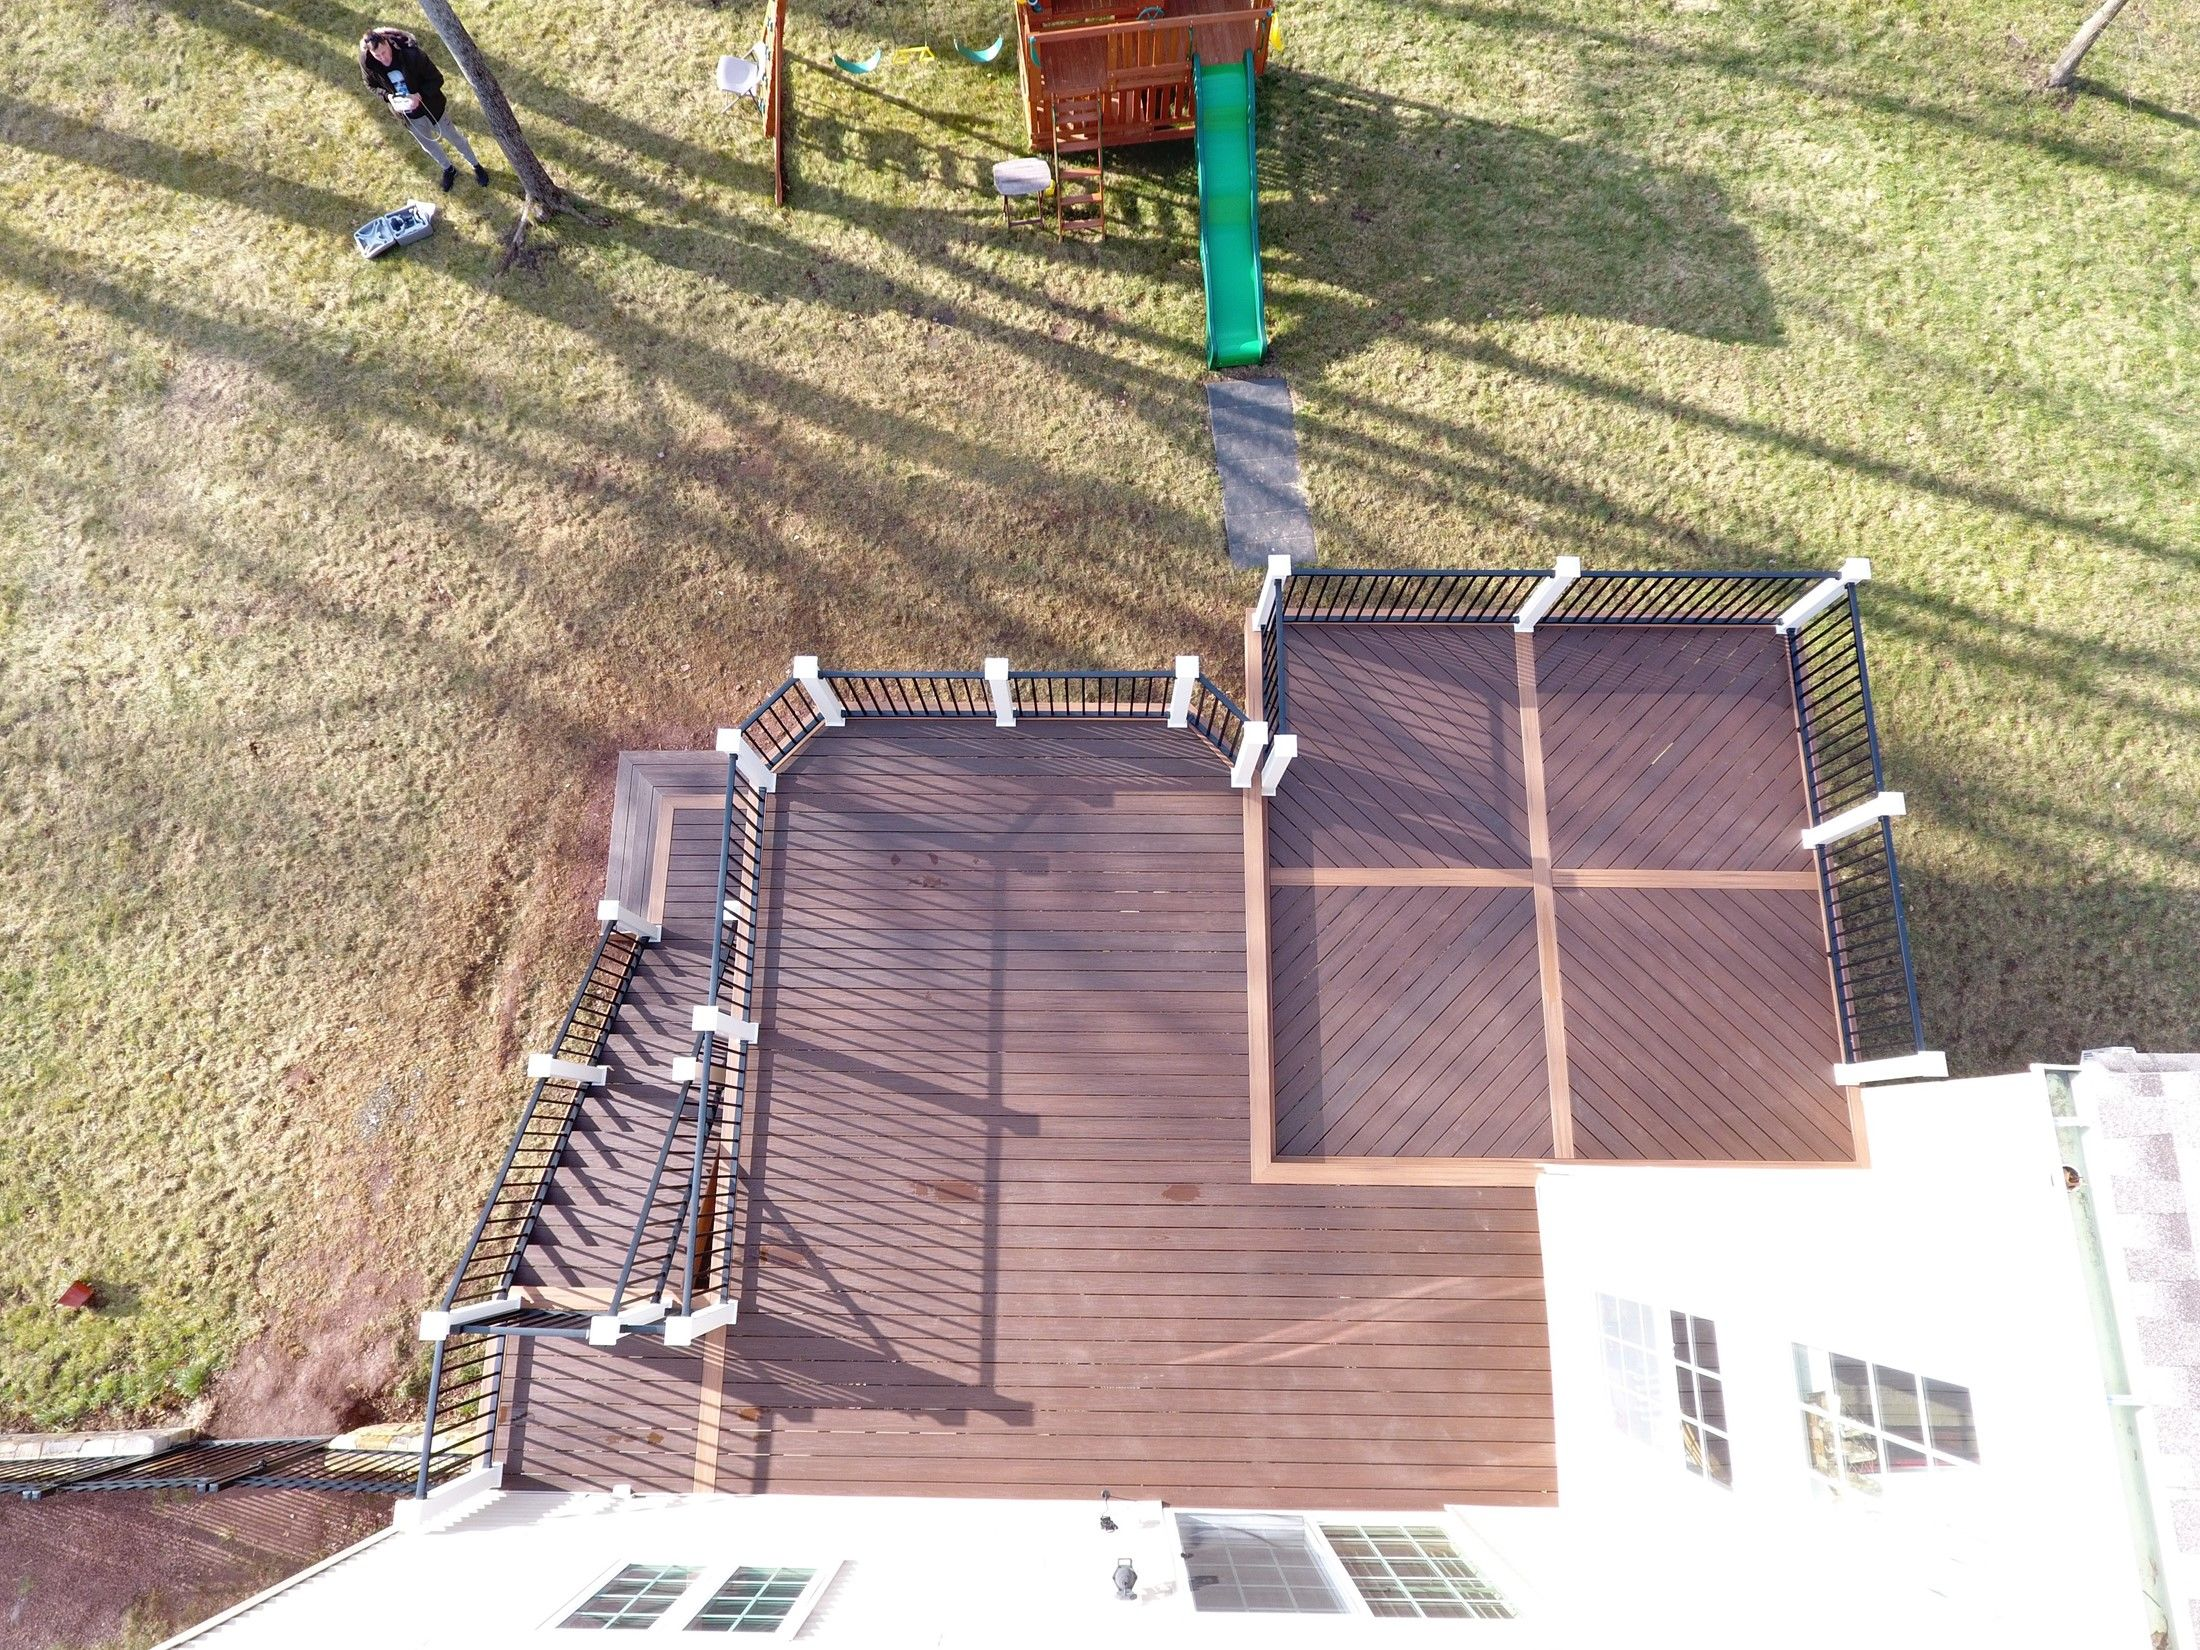 2 Level Deck, Custom Floor Pattern - Picture 7506